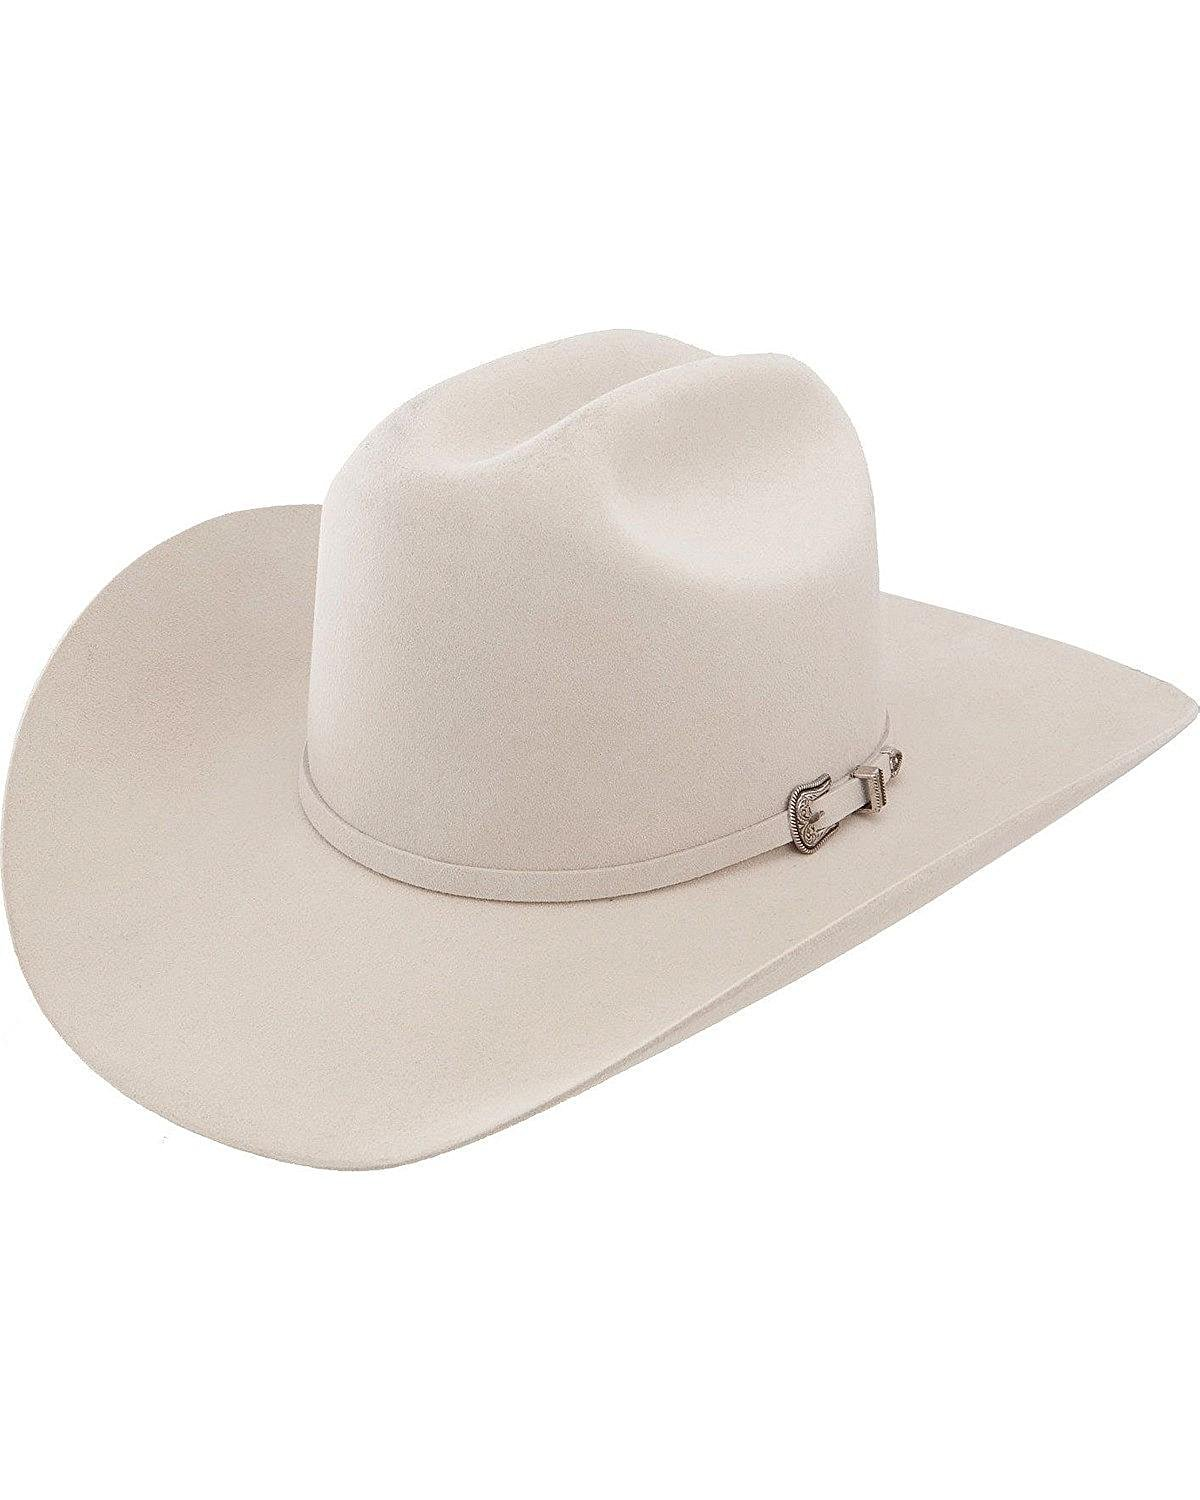 3a1958b626880 Get Quotations · Resistol Men s 5X Challenger Fur Felt Silverbelly Cowboy  Hat - Rftchg-7540 Sb